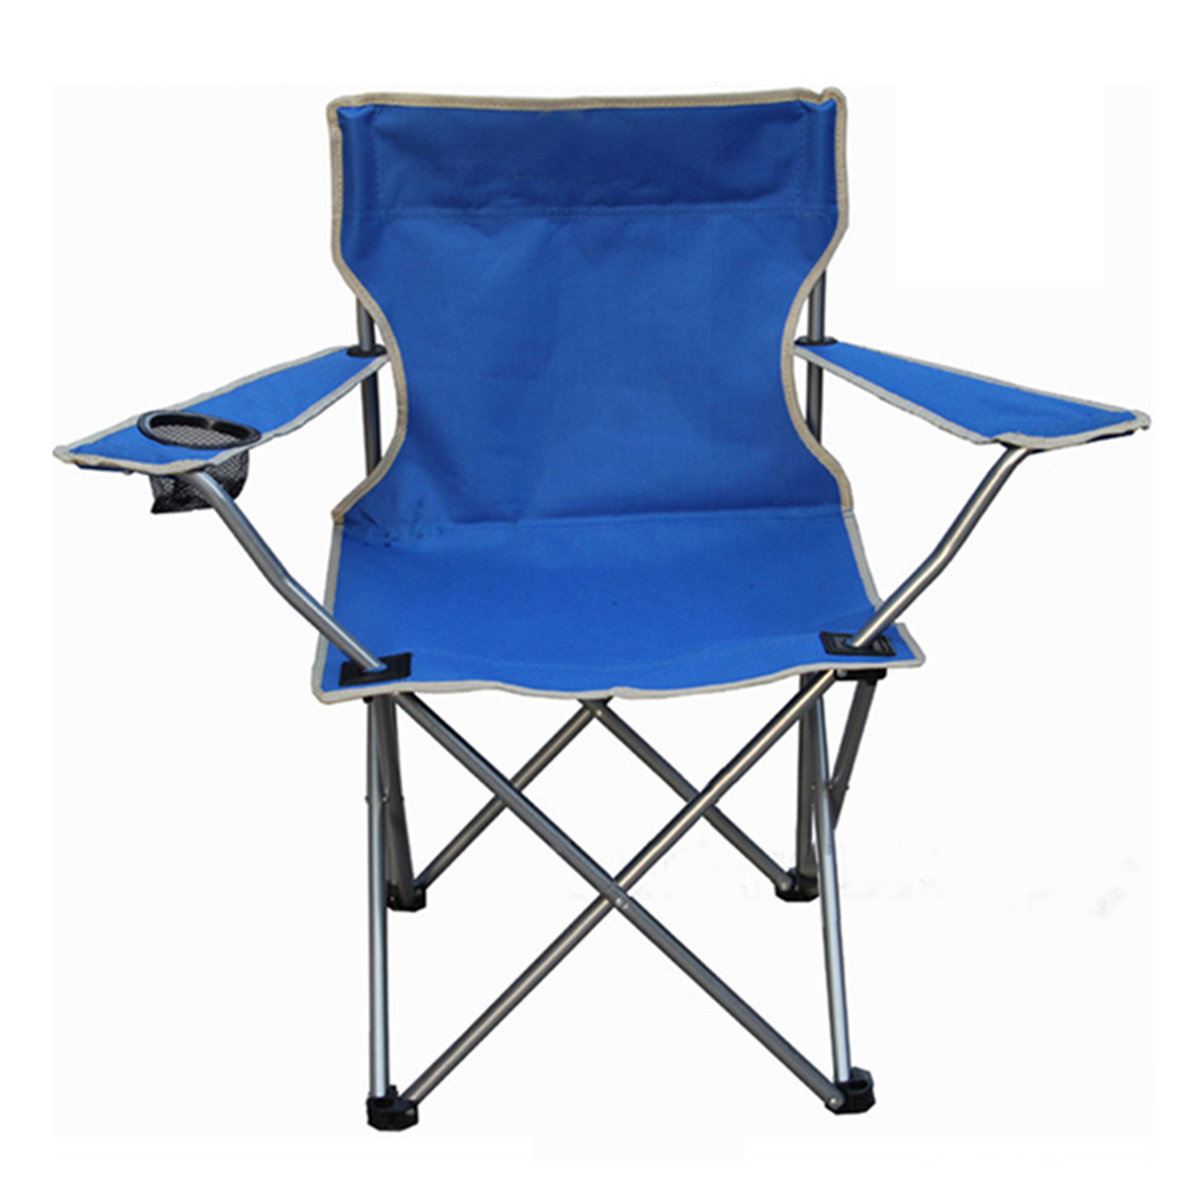 Picnic Chairs Outdoor Portable Folding Chair Fishing Camping Beach Picnic Chair Seat With Cup Holder